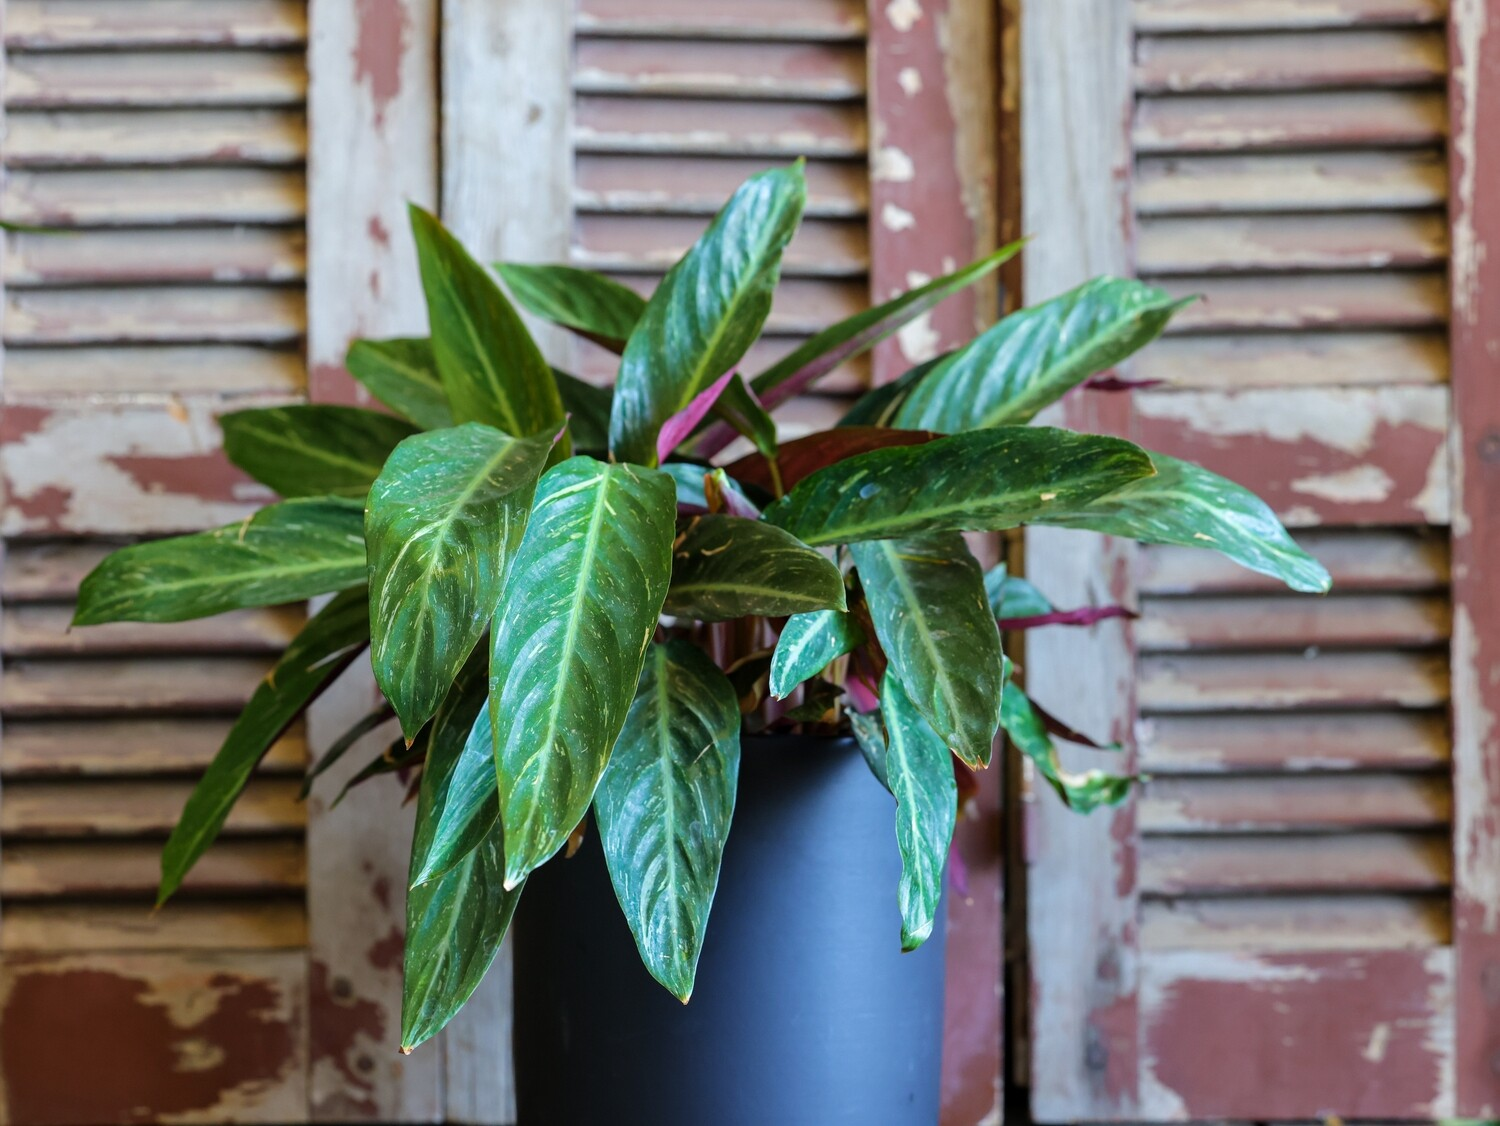 Calathea stromanthe sanguinea (Plant) - Nature by Marc Beyrouthy